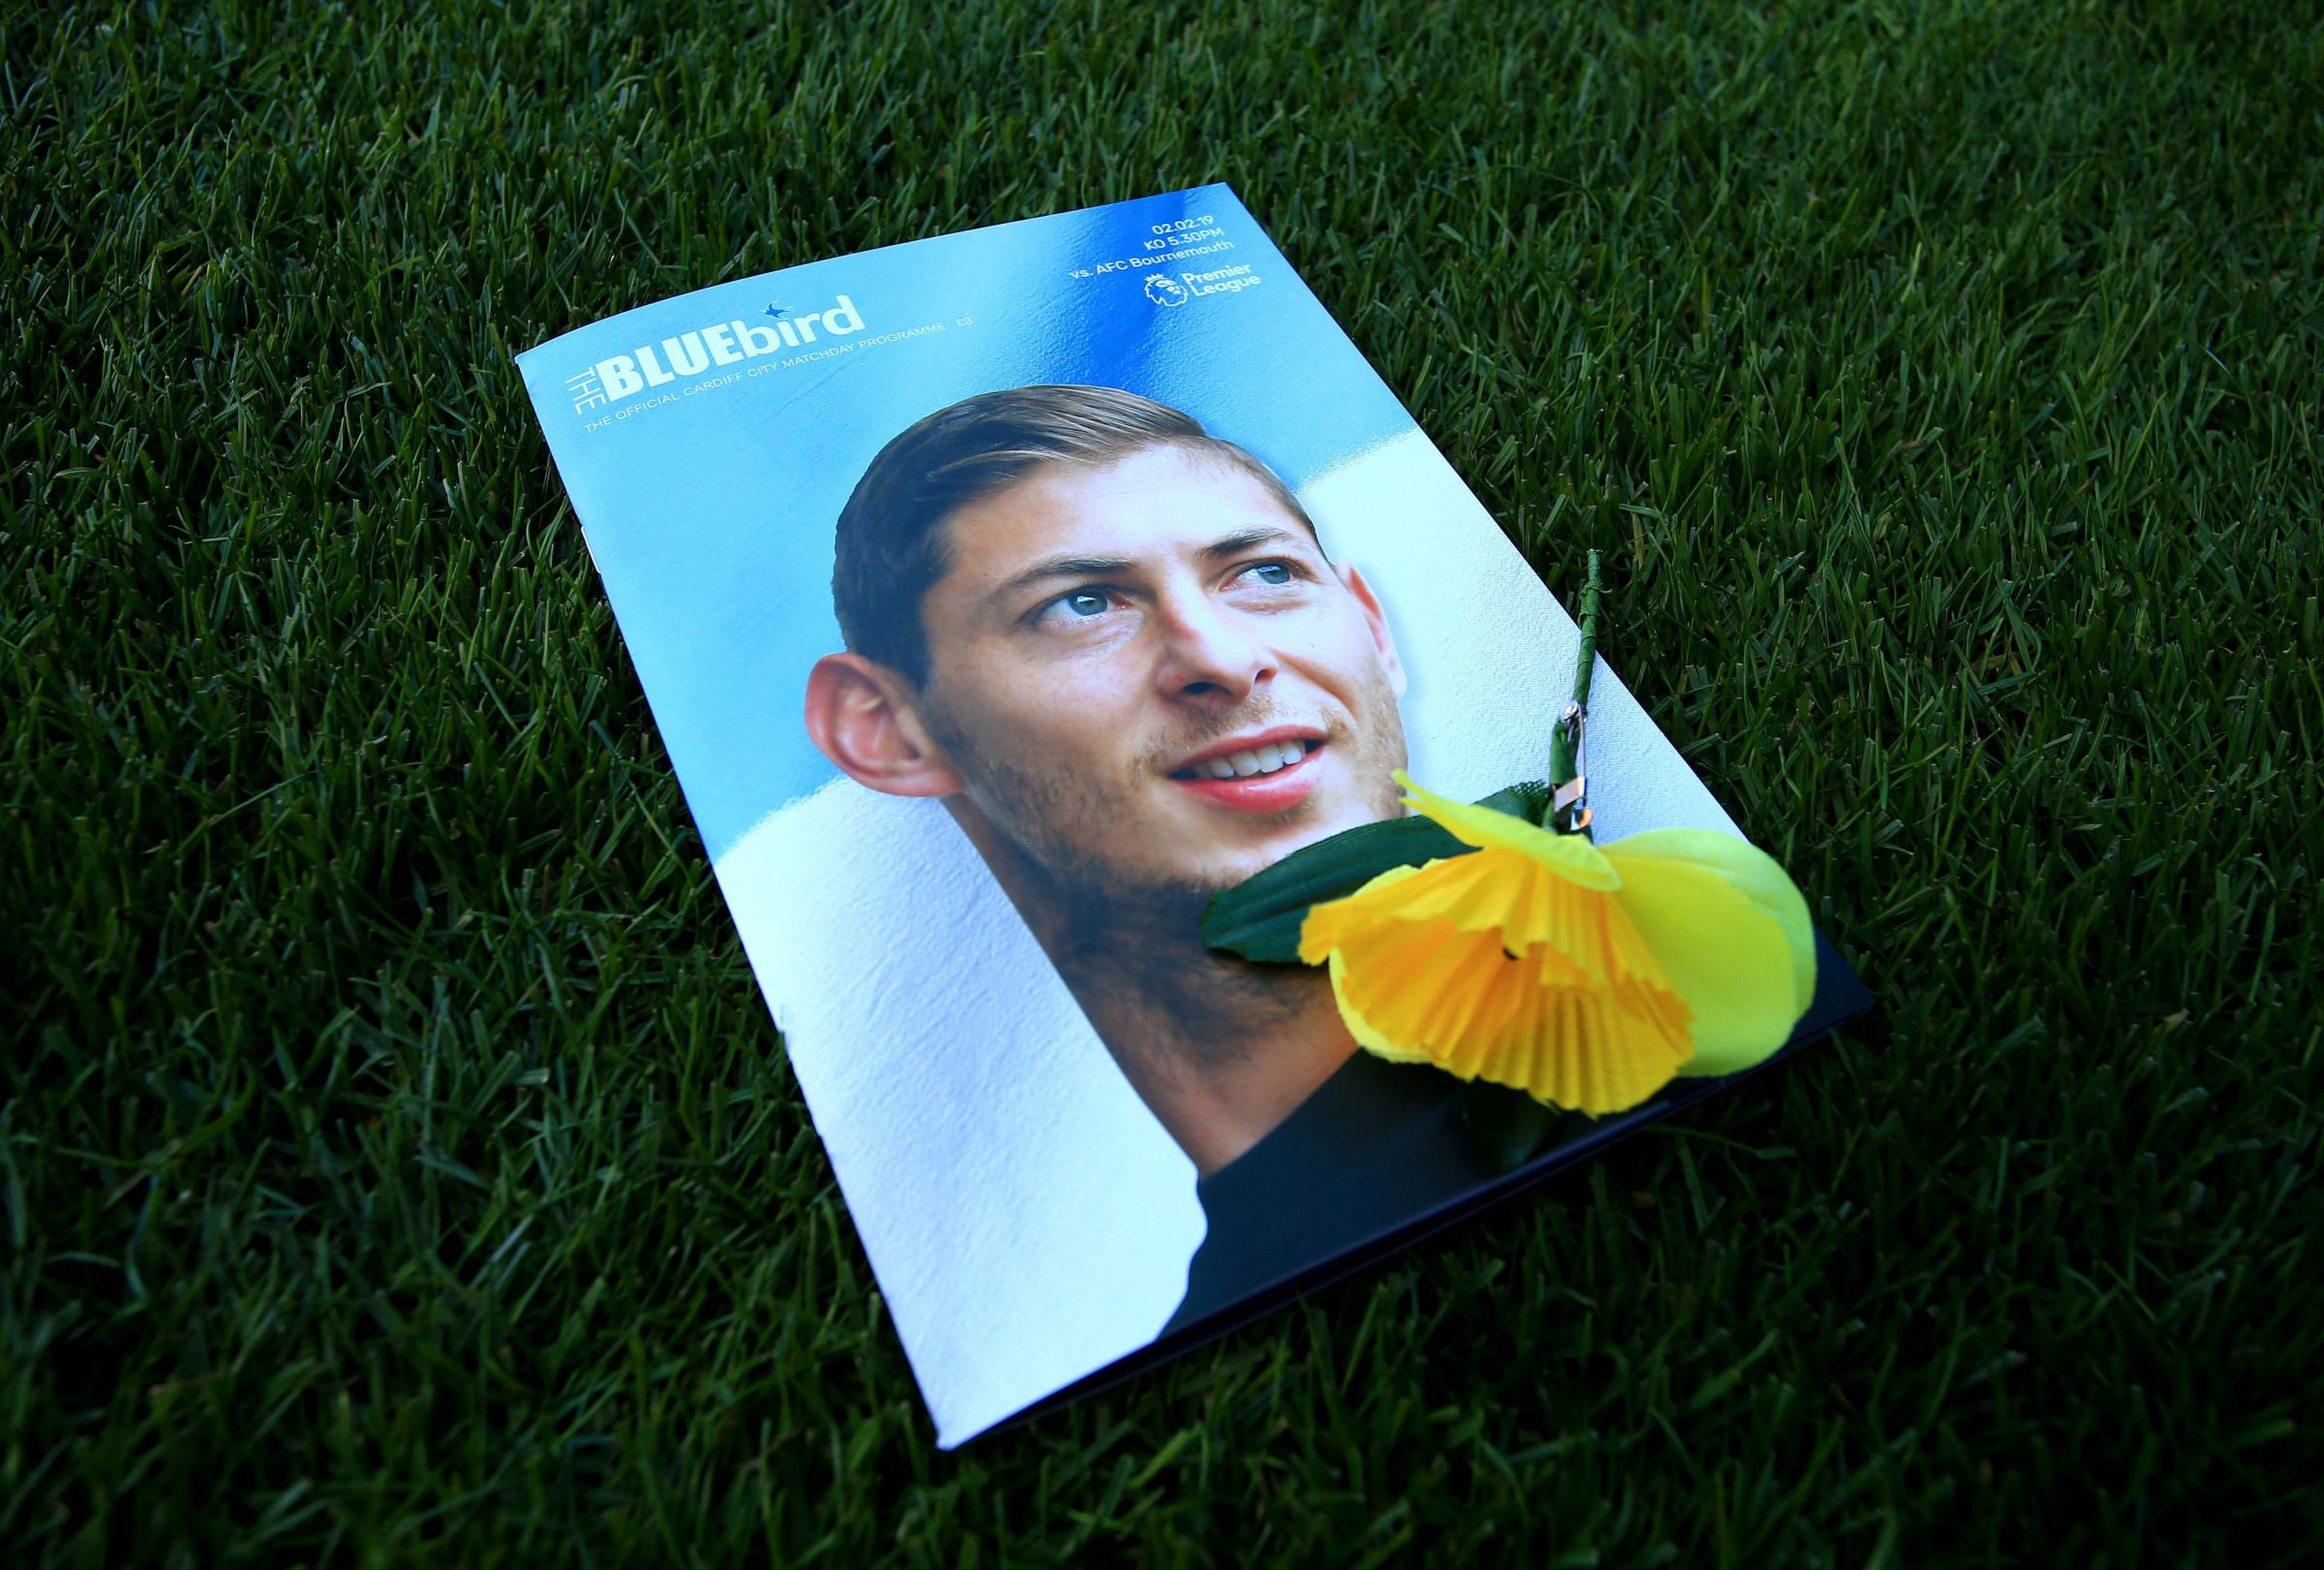 File photo dated 02-02-2019 of A view of the match day programme with an image of Emiliano Sala on the cover. PRESS ASSOCIATION Photo. Issue date: Frday February 8, 2019. Emiliano Sala will forever remain in the thoughts of Cardiff City, the club said, as